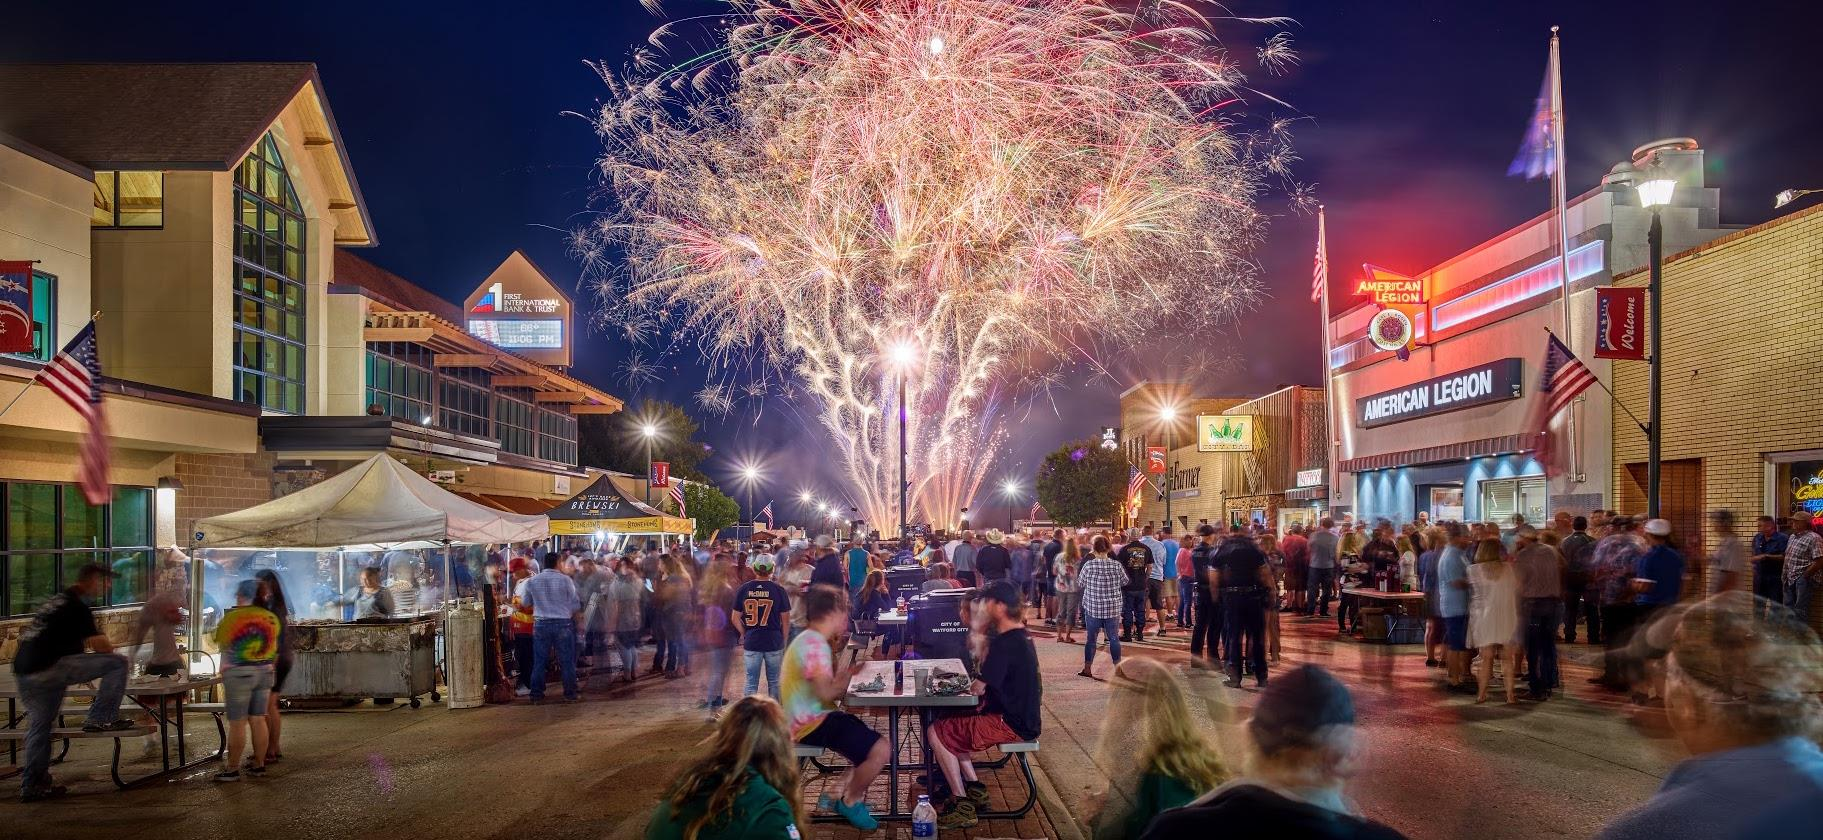 Fireworks during Watford City Homefest